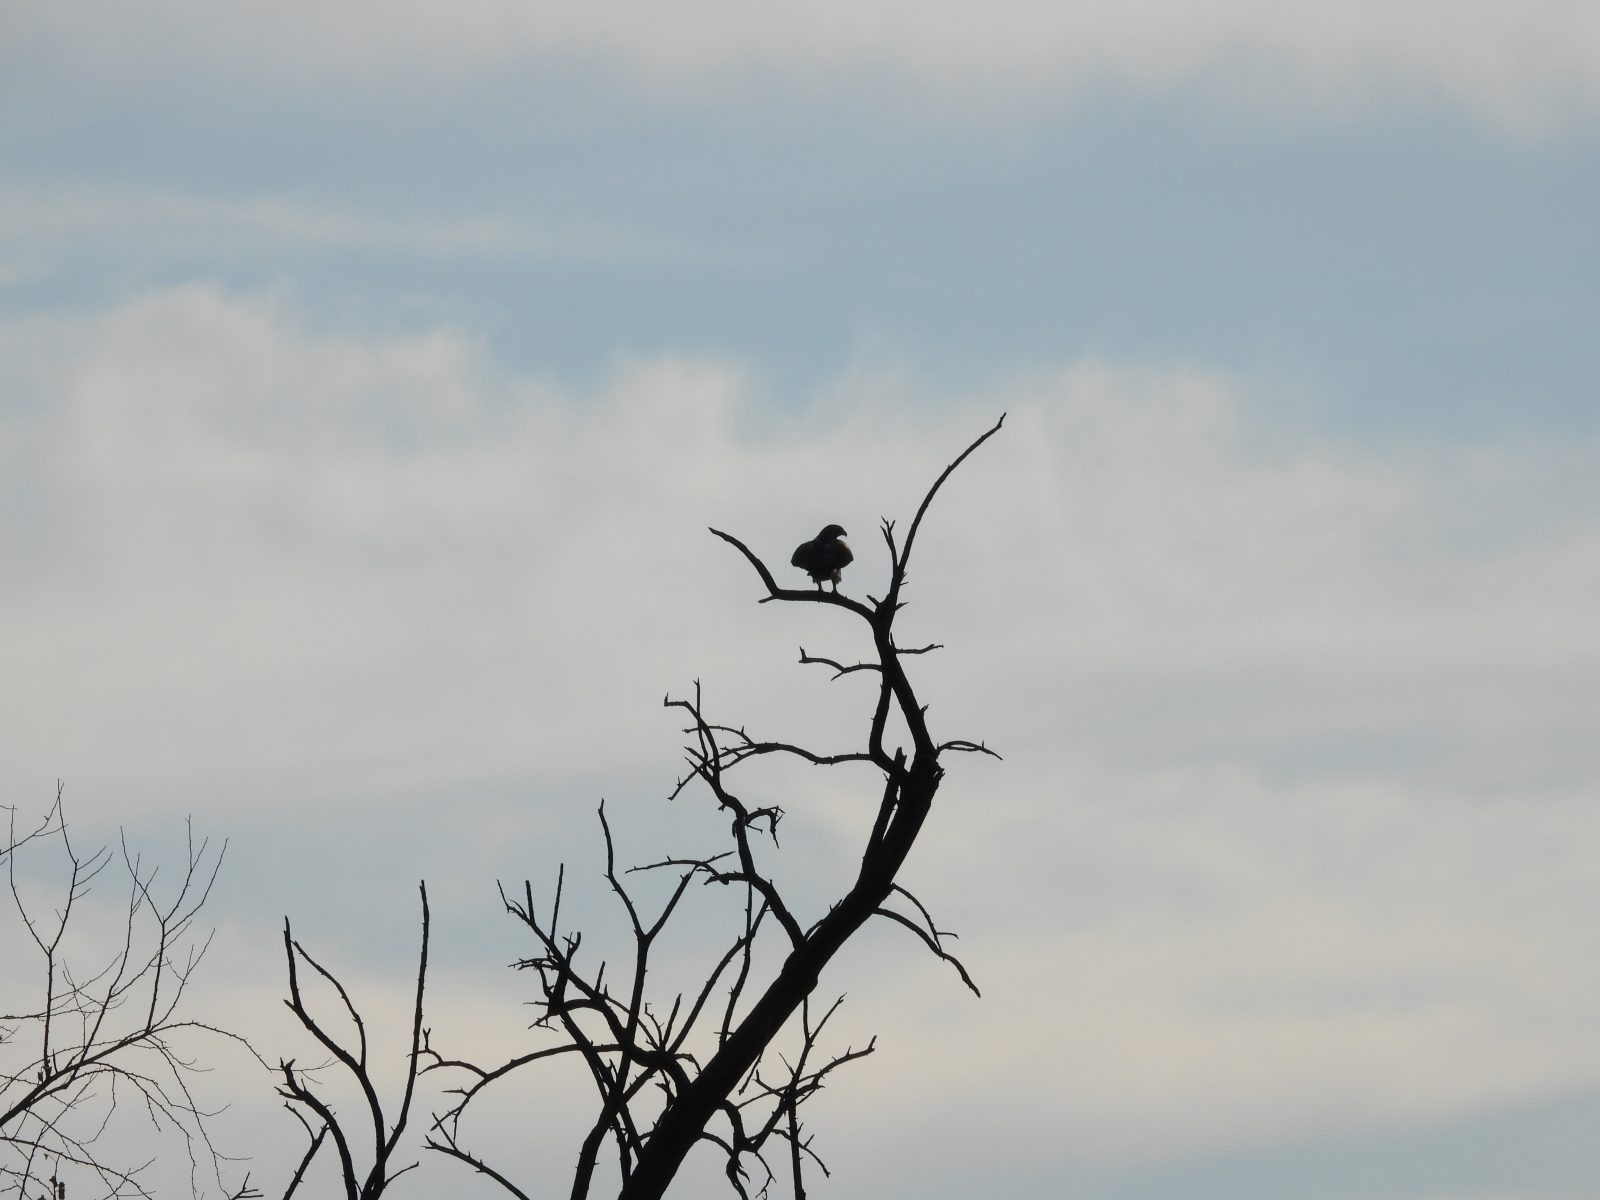 Hawk silhouetted in a tree: Red-tailed hawk bird of prey raptor silhouetted as it is perched in a bare tree on a late autumn day with a blue cloudy sky in the background